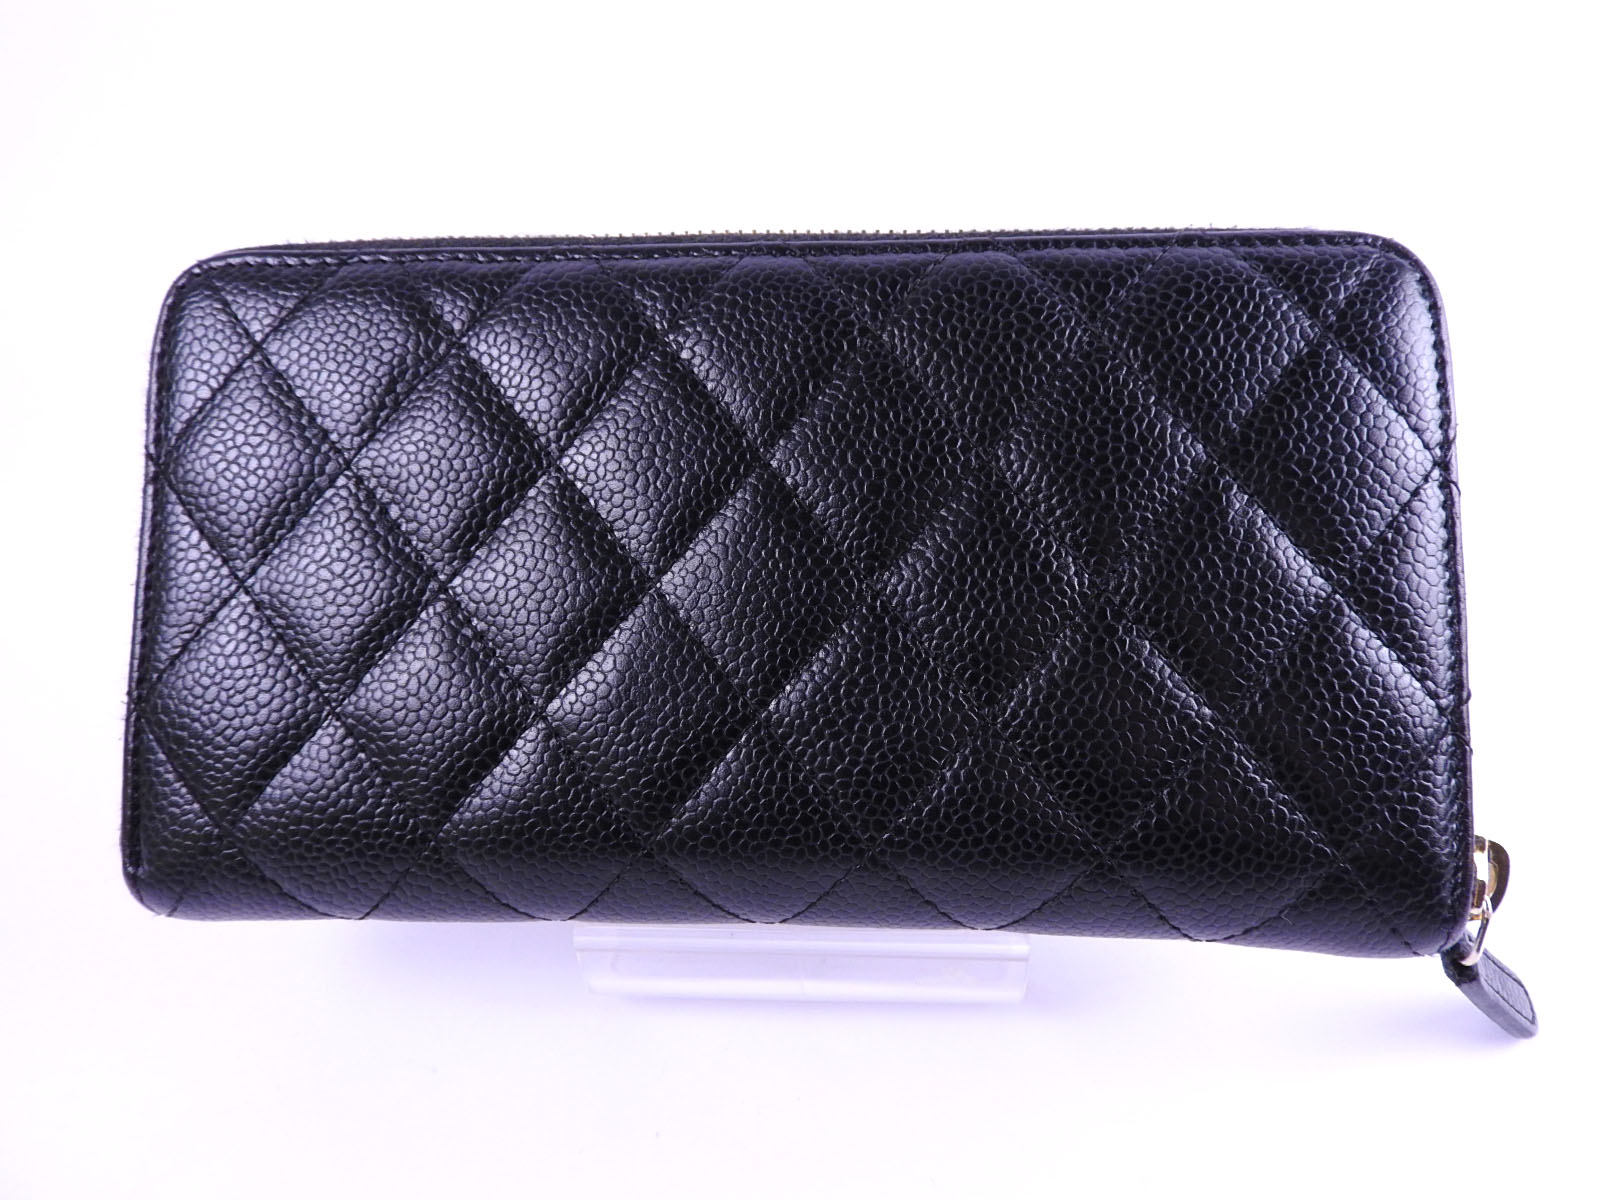 e3084579ca41 Details about Auth CHANEL CC Matelasse Zip Around Long Wallet Caviar Skin  Black A50097 A-8796